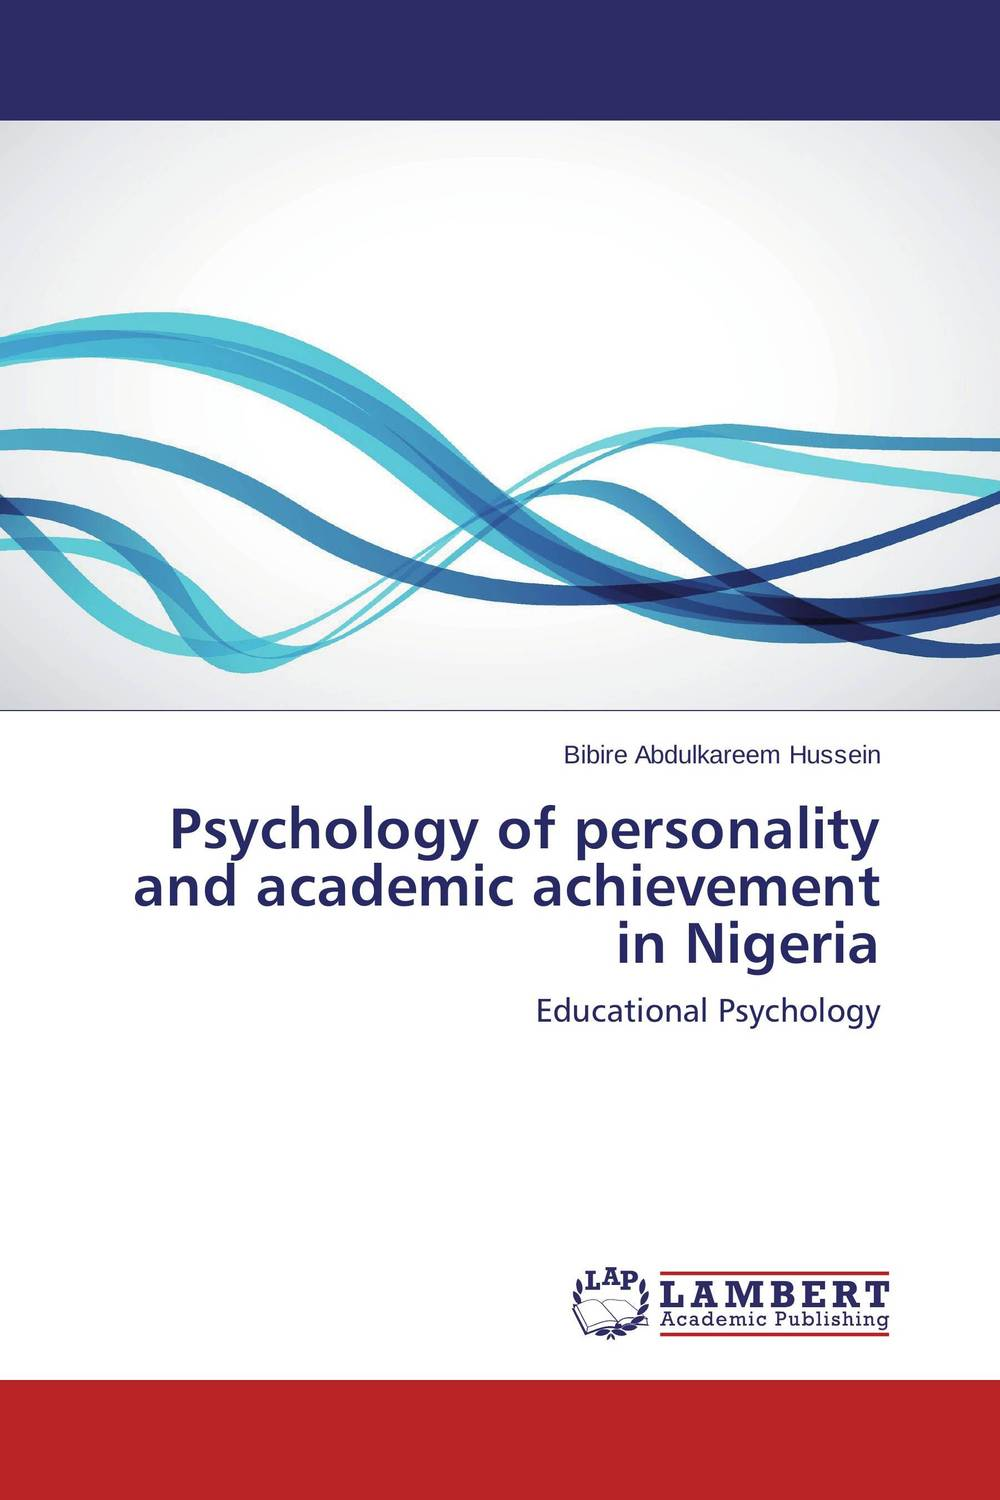 Psychology of personality and academic achievement in Nigeria